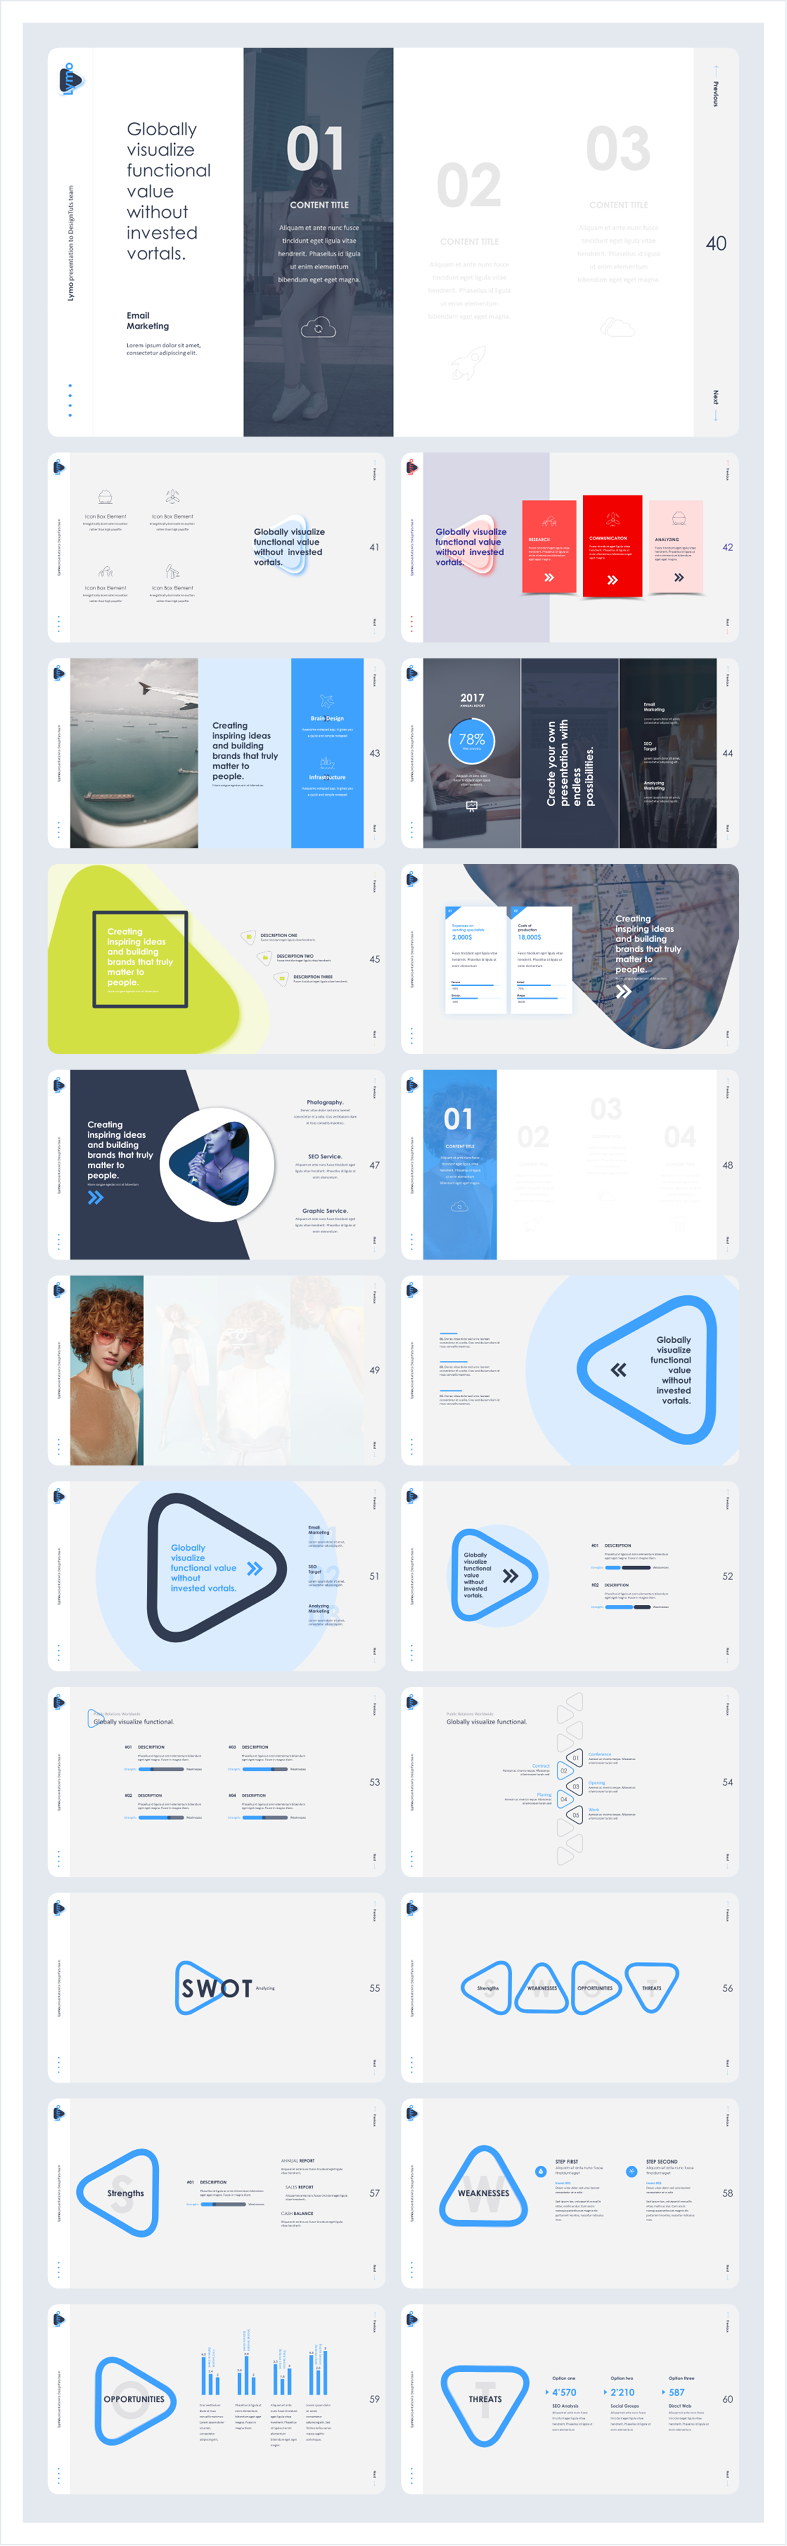 Lymo Powerpoint Presentation Template - 14